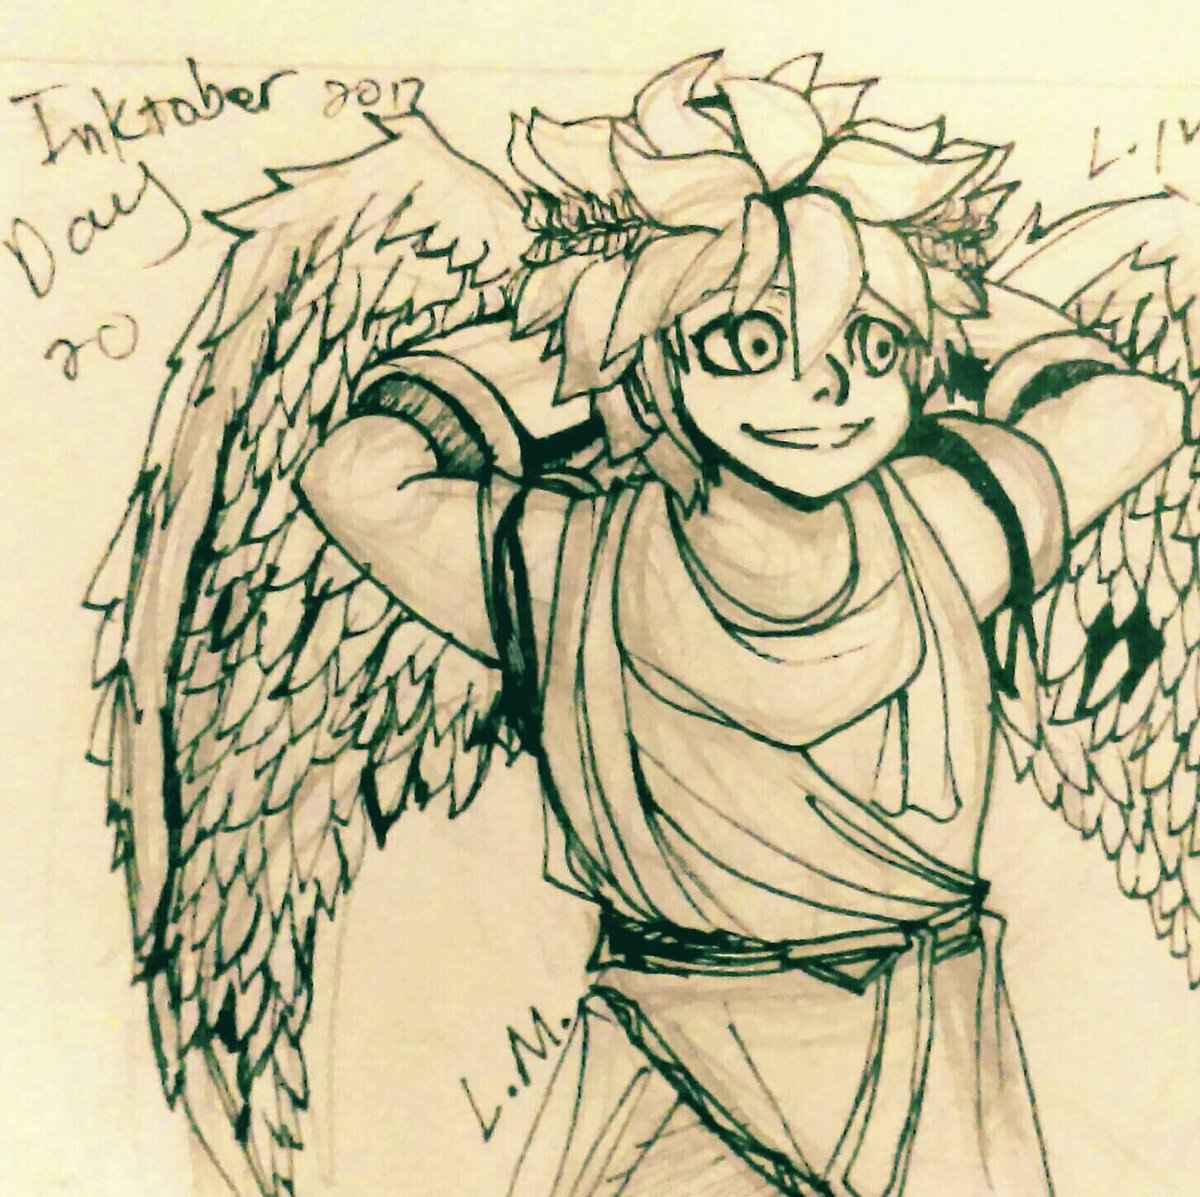 Pit From Kid Icarus This Is My Final Artwork For Inktober I Failed But Went Up To Day 20 A New Record Inktober2017 Inktoberday20 Kidicarus